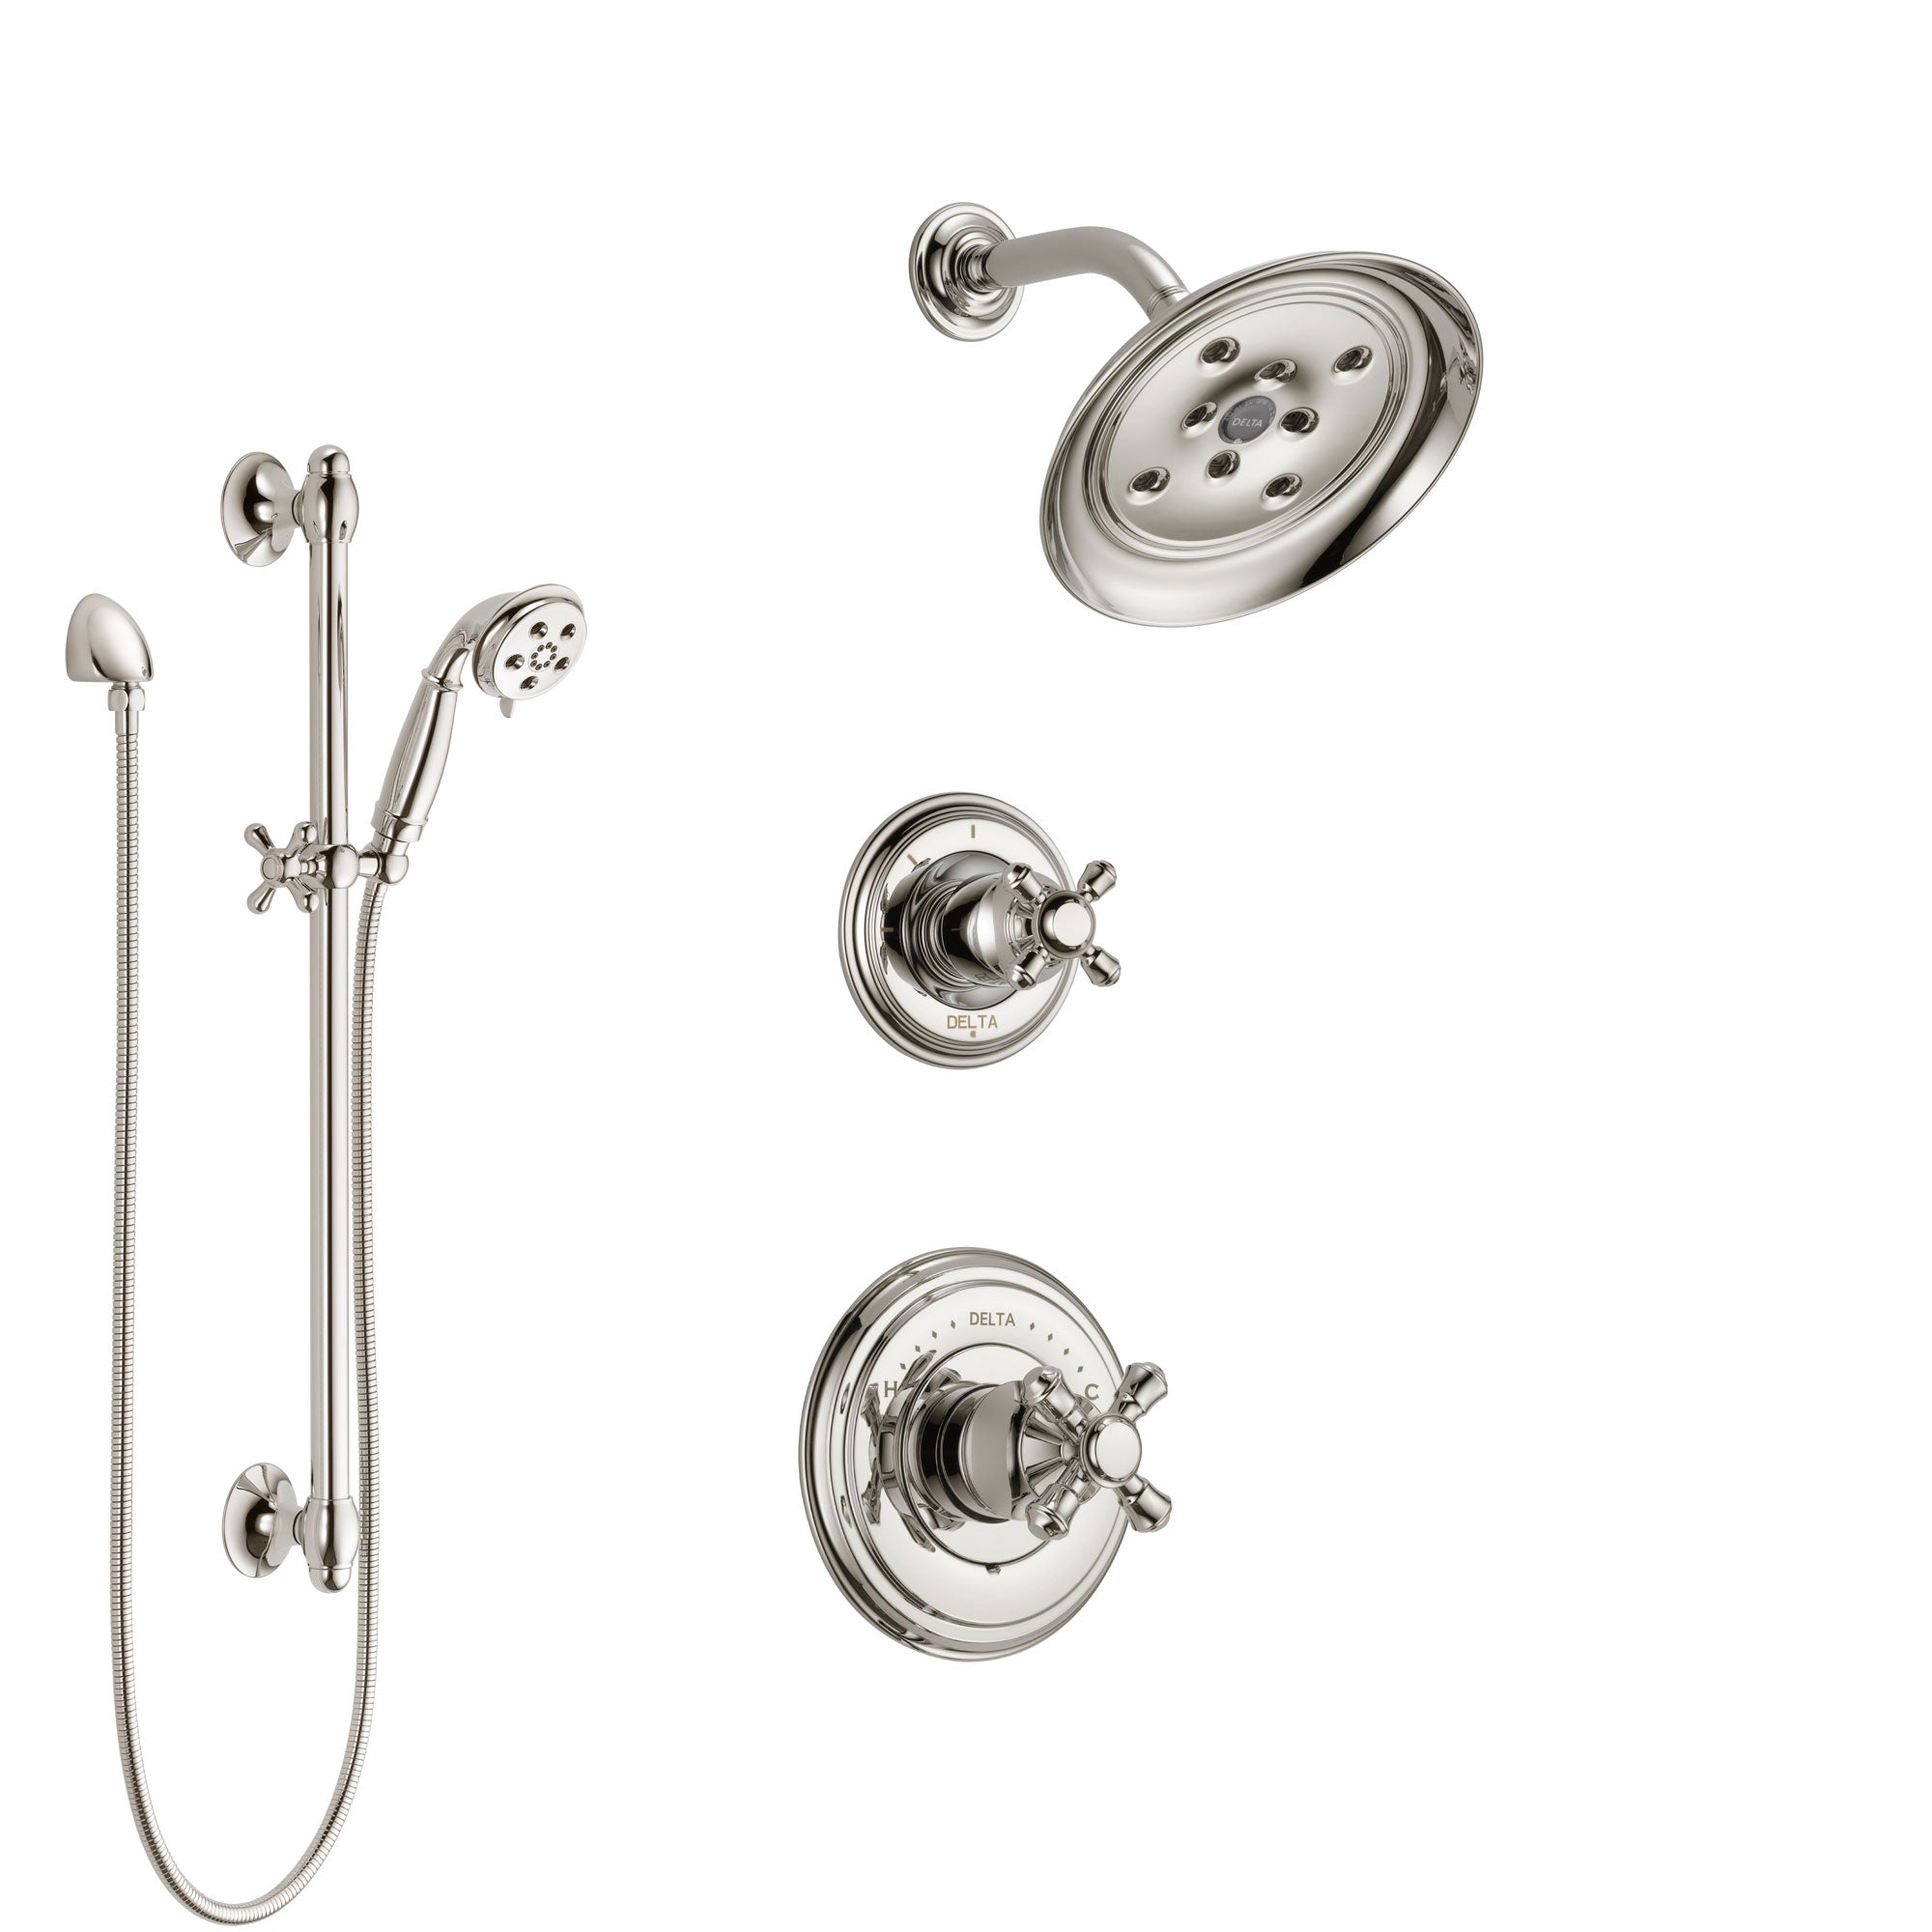 Delta Cassidy Polished Nickel Finish Shower System with Control Handle, 3-Setting Diverter, Showerhead, and Hand Shower with Slidebar SS142971PN2